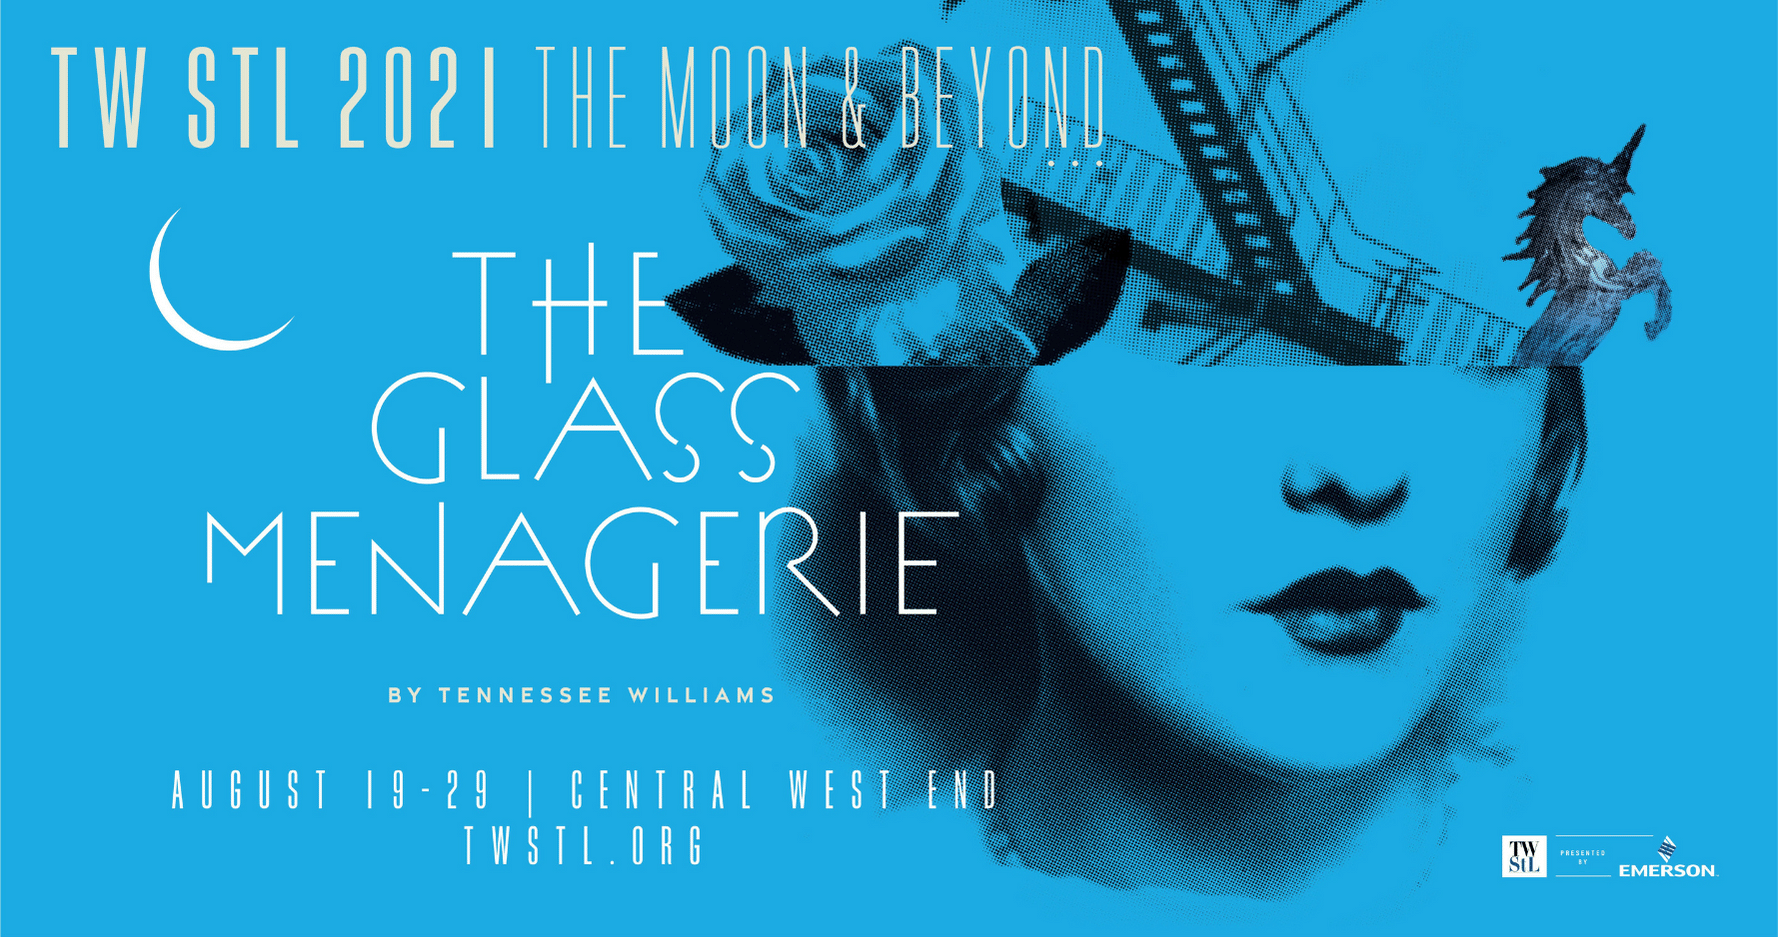 TW STL 2021 The Moon and Beyond featuring The Glass Menagerie by Tennessee Williams from August 19-29 in the Central West End.